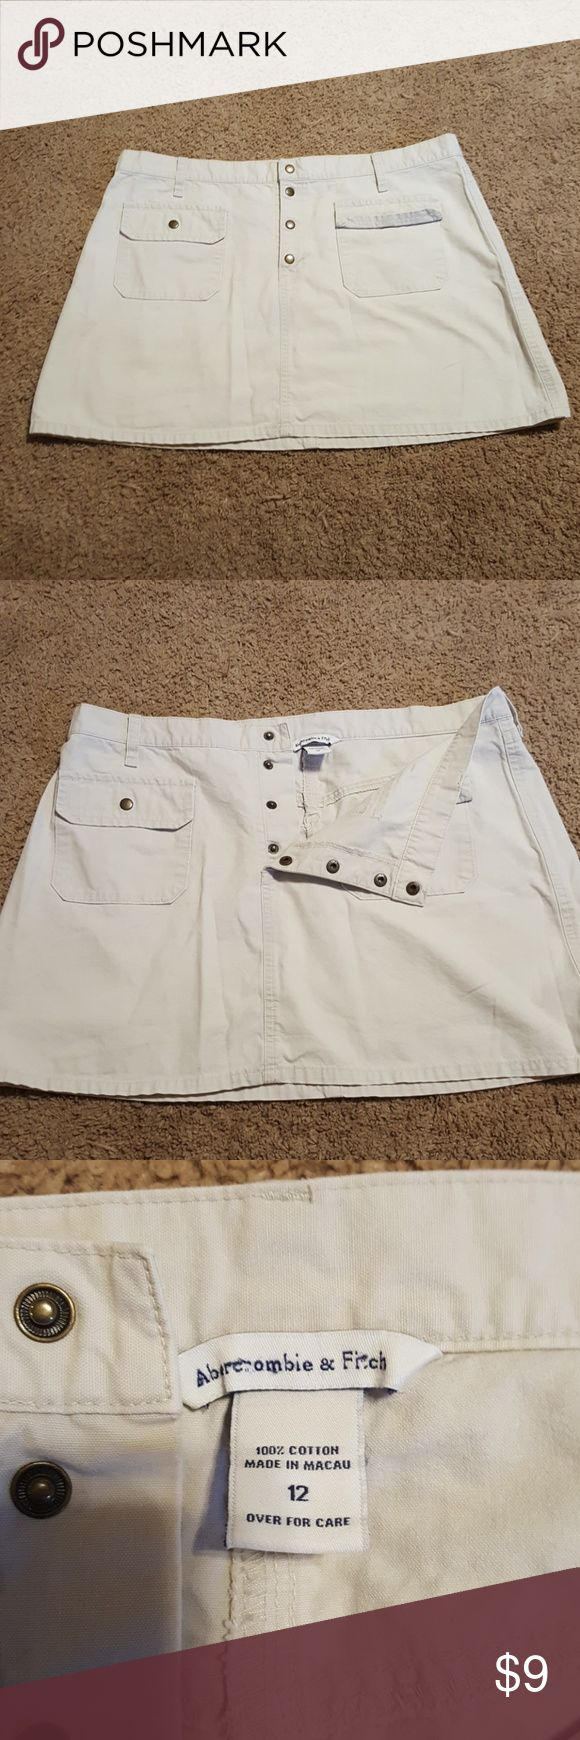 Abercrombie and Fitch skirt Good condition Abercrombie and Fitch khaki skirt size 12. Abercrombie & Fitch Skirts